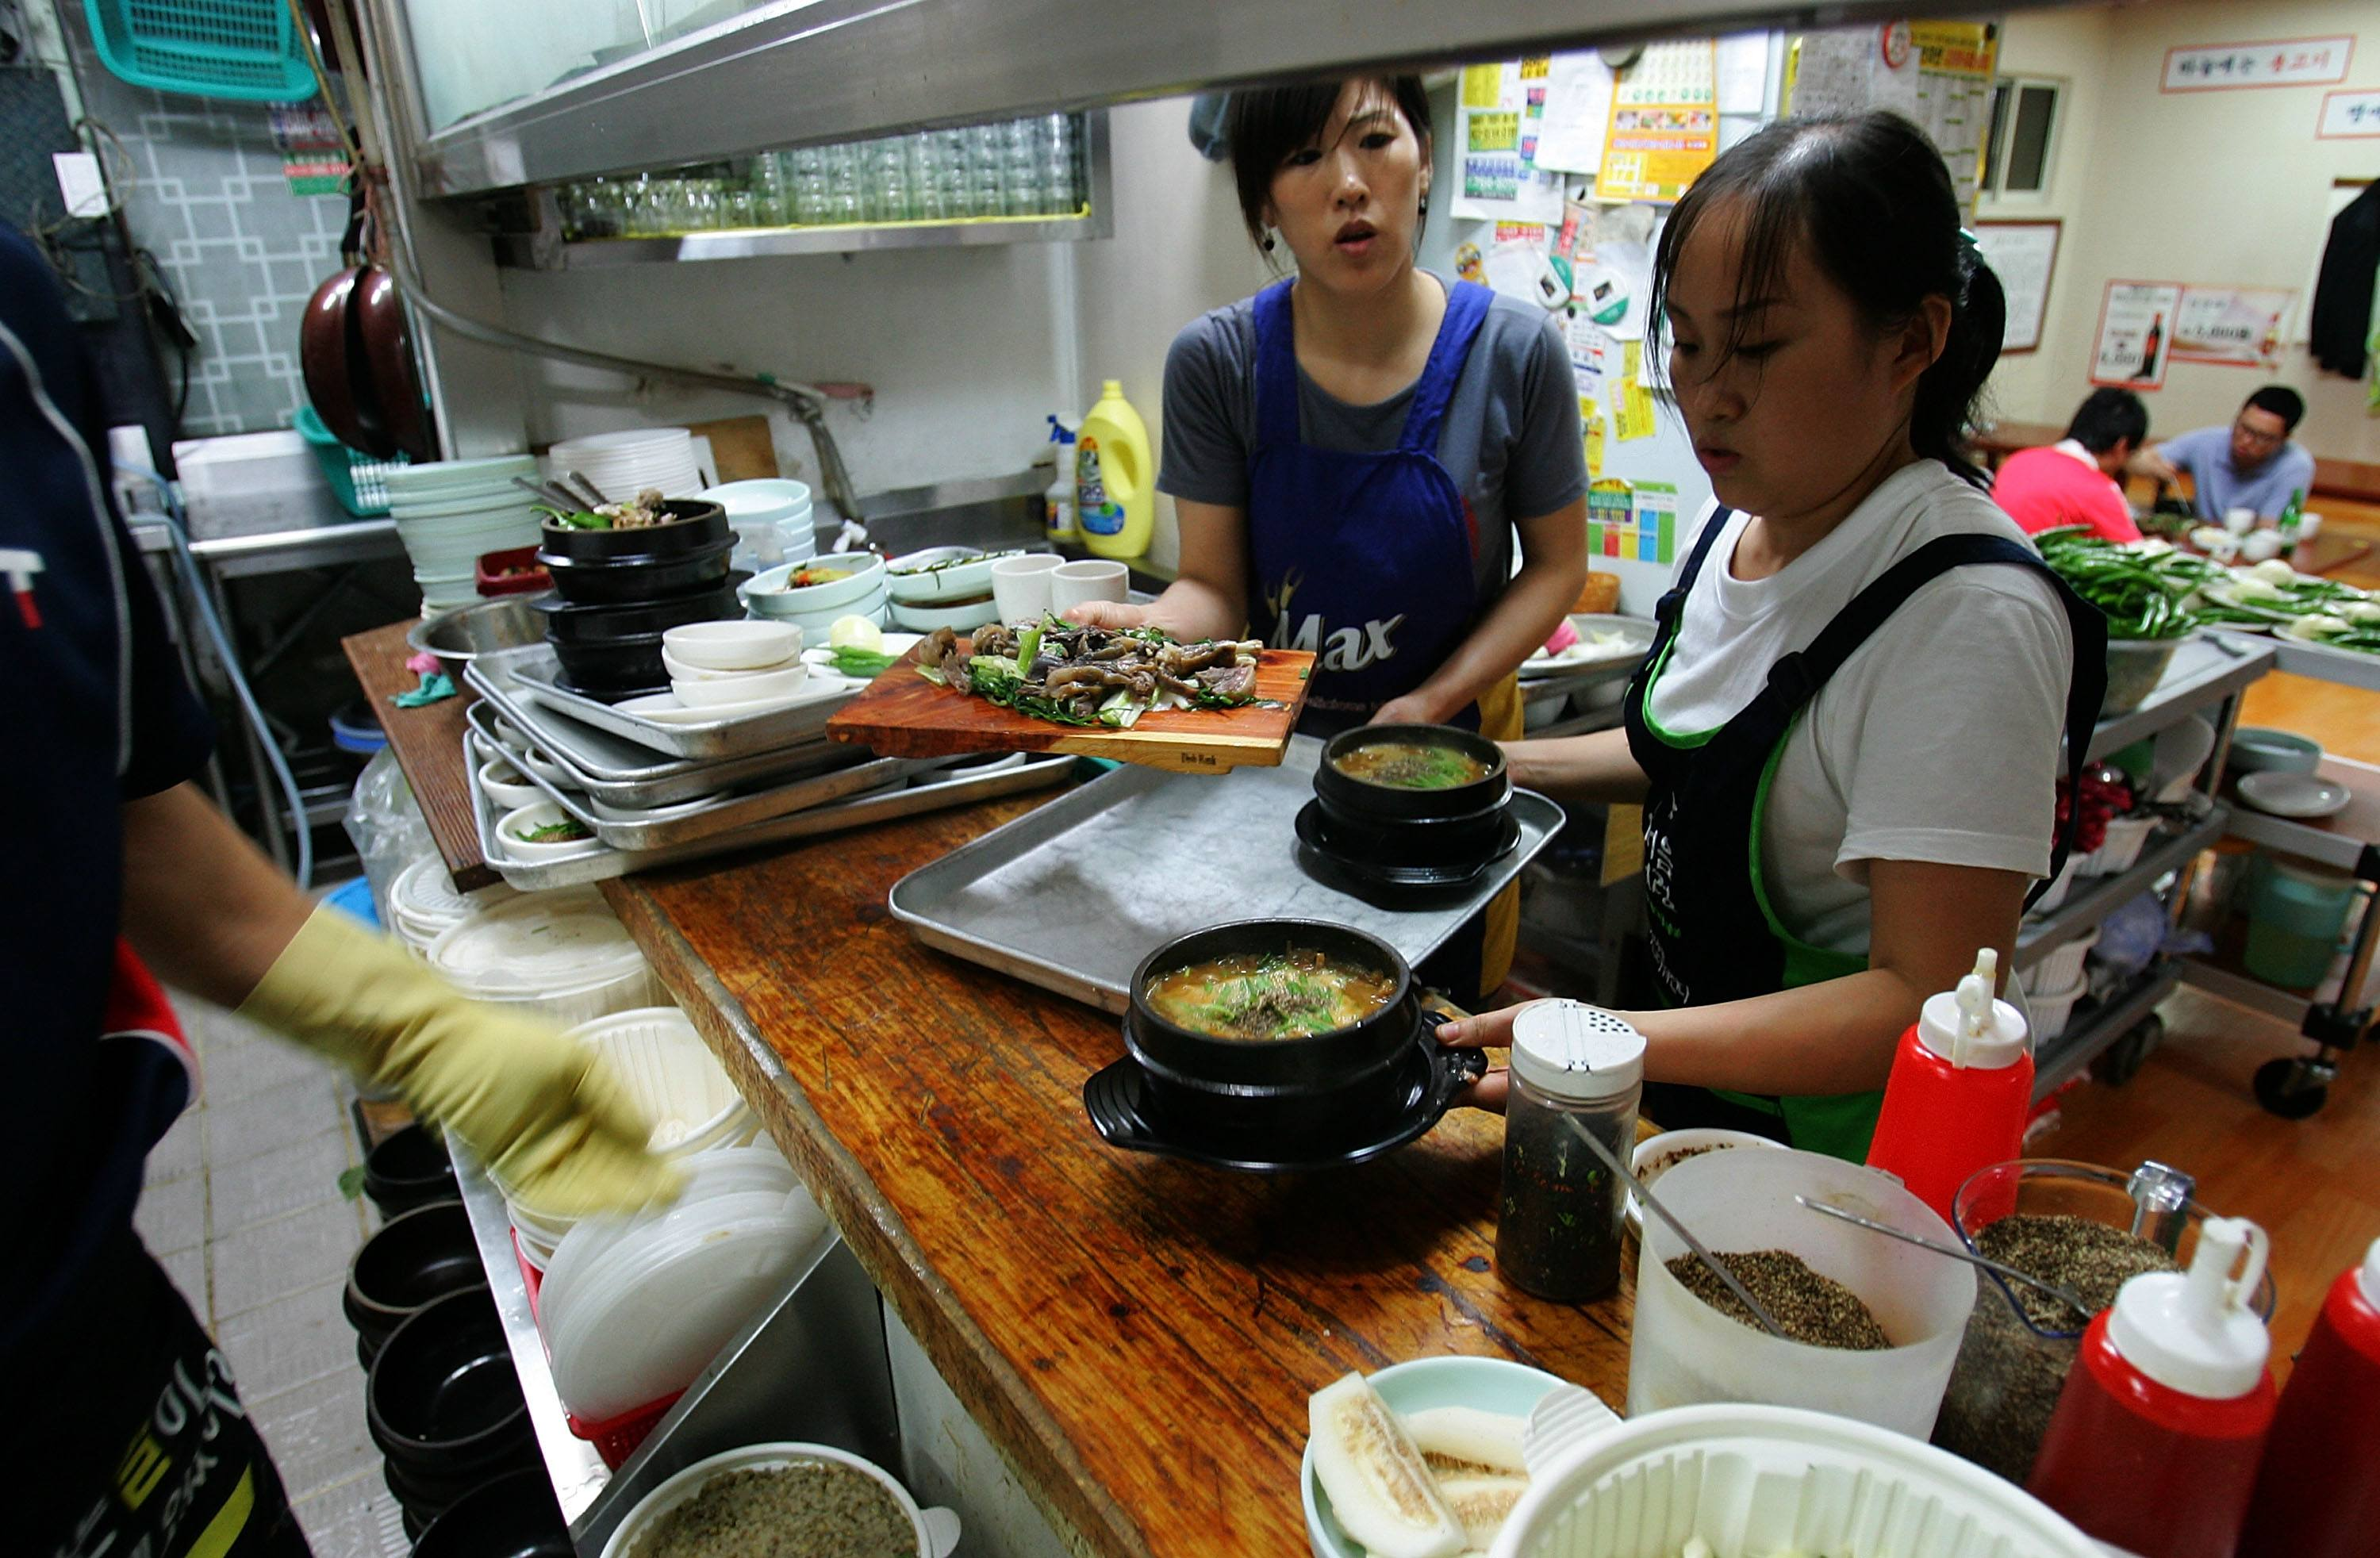 Chef with dog meat stew